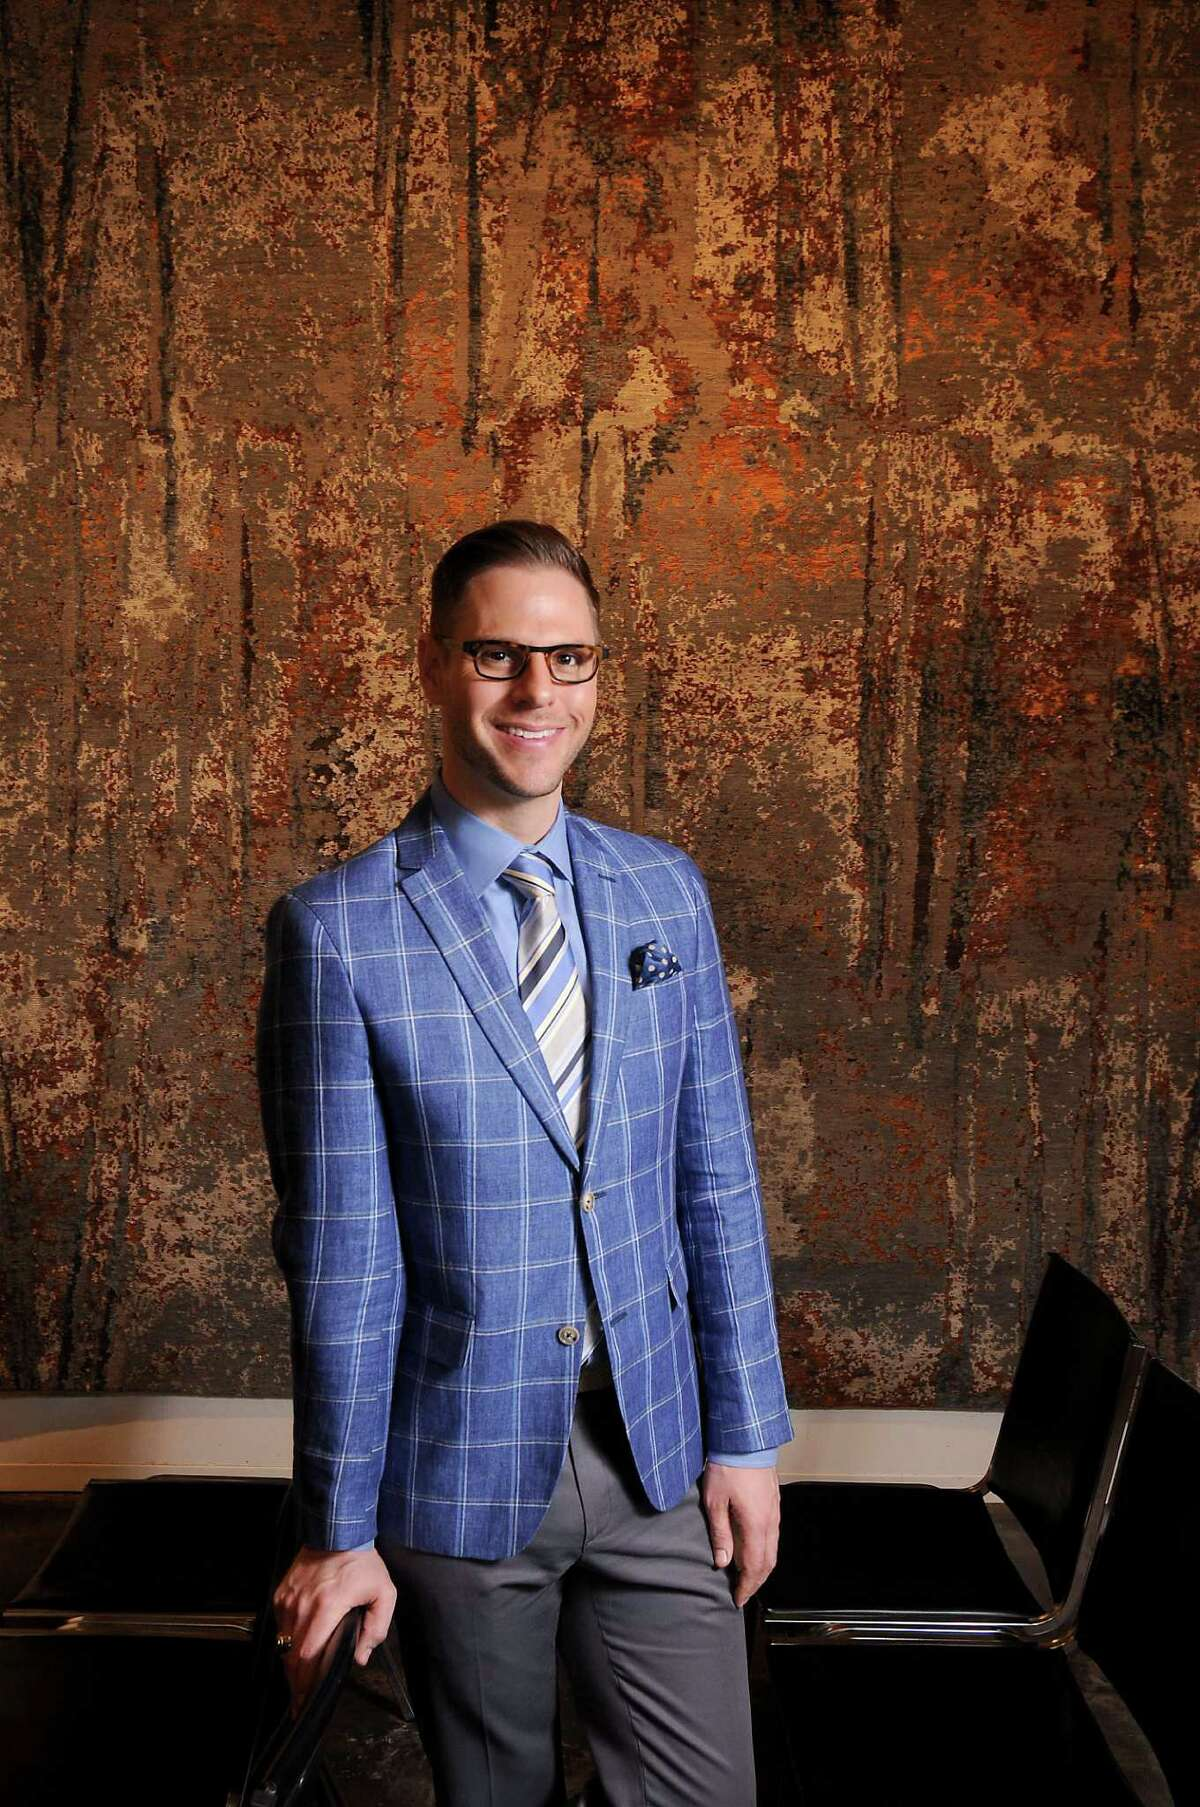 BEN JOHNSTON:  Interior designer Ben Johnson is a sixth generation Houstonian. He also the co-founder of Avondale Design Studio and one of Decorative Center Houston's Stars on the Rise. Earlier this summer, he shared his top decor tips during one of Design Center Houston's recent